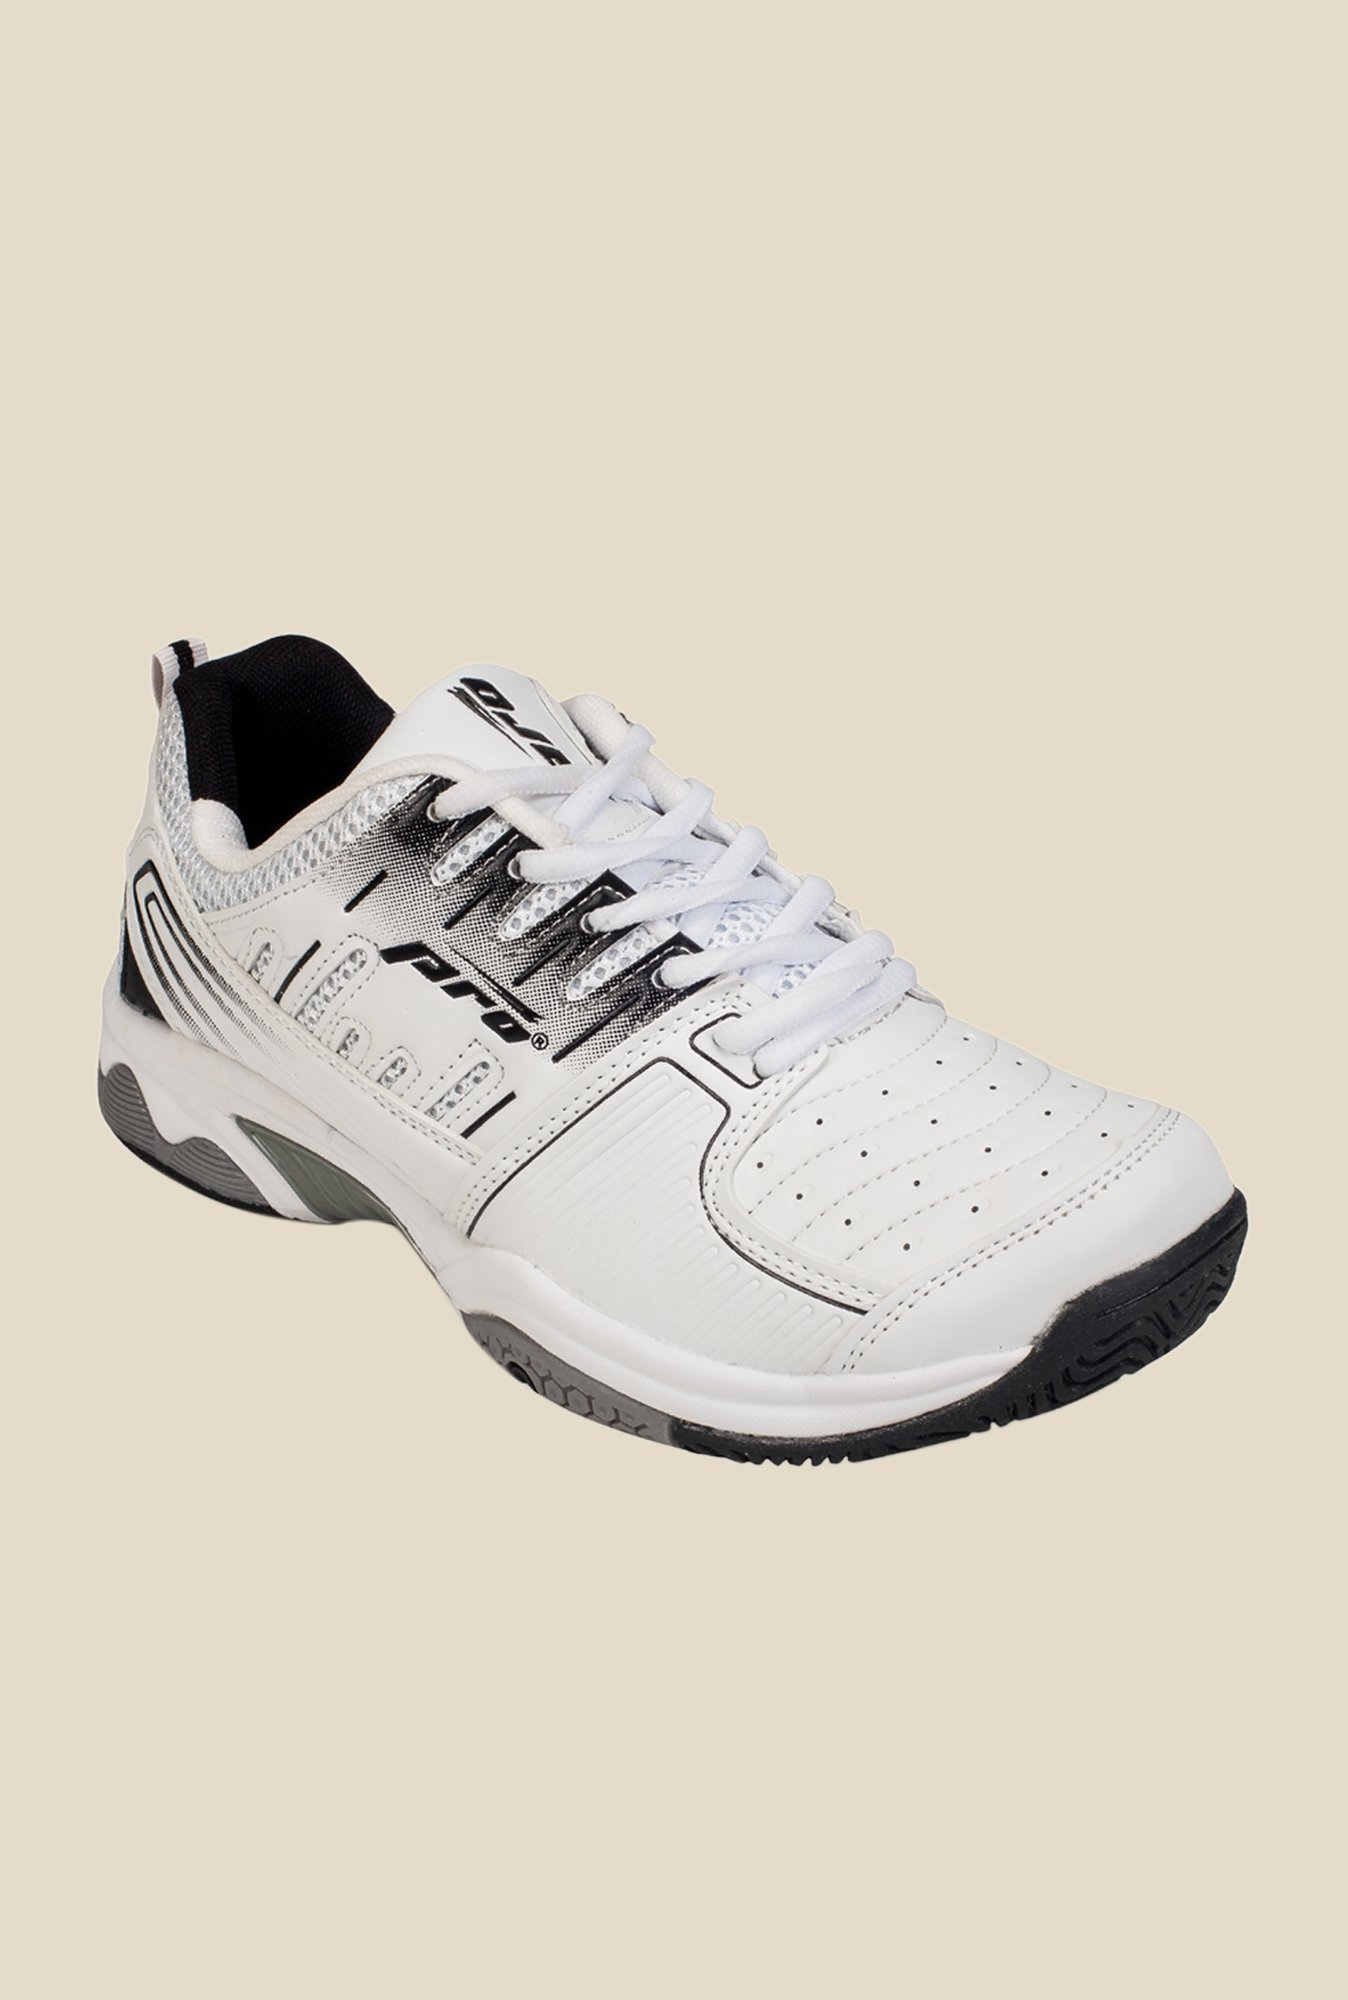 Khadim's Pro White Running Shoes